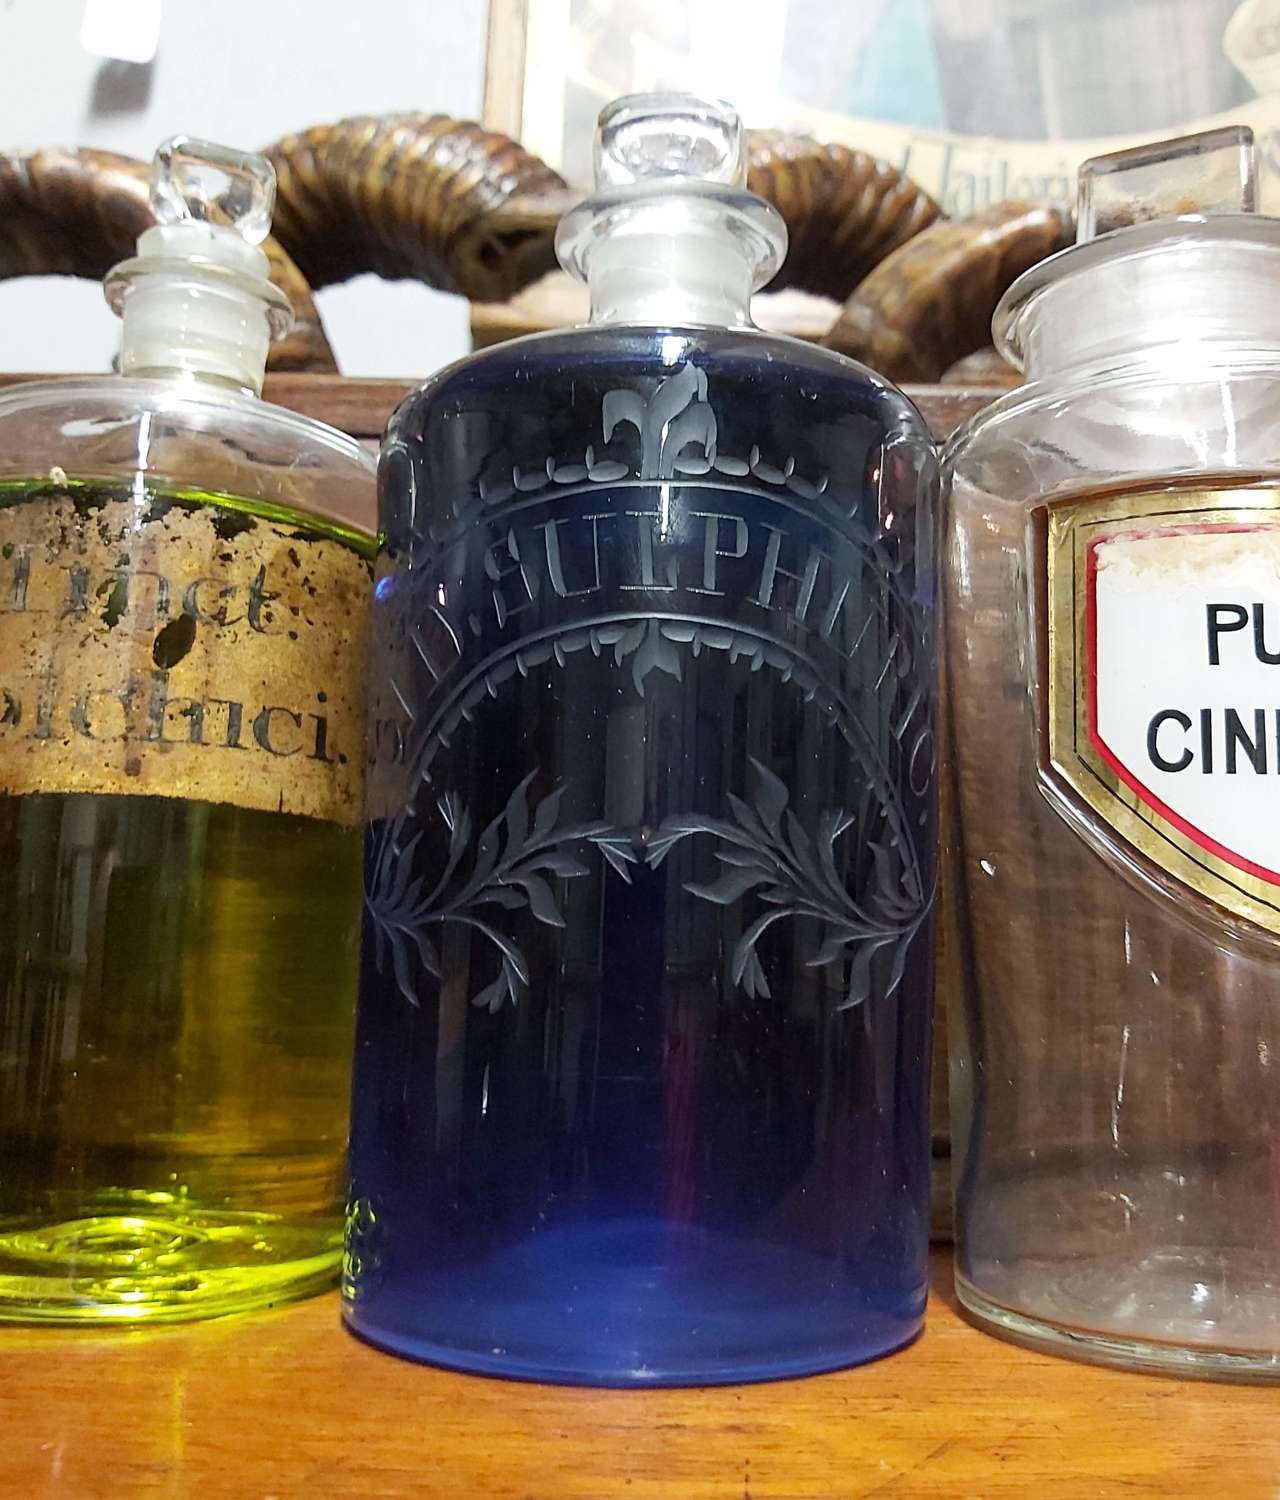 19th Century Engraved Apothecary bottle